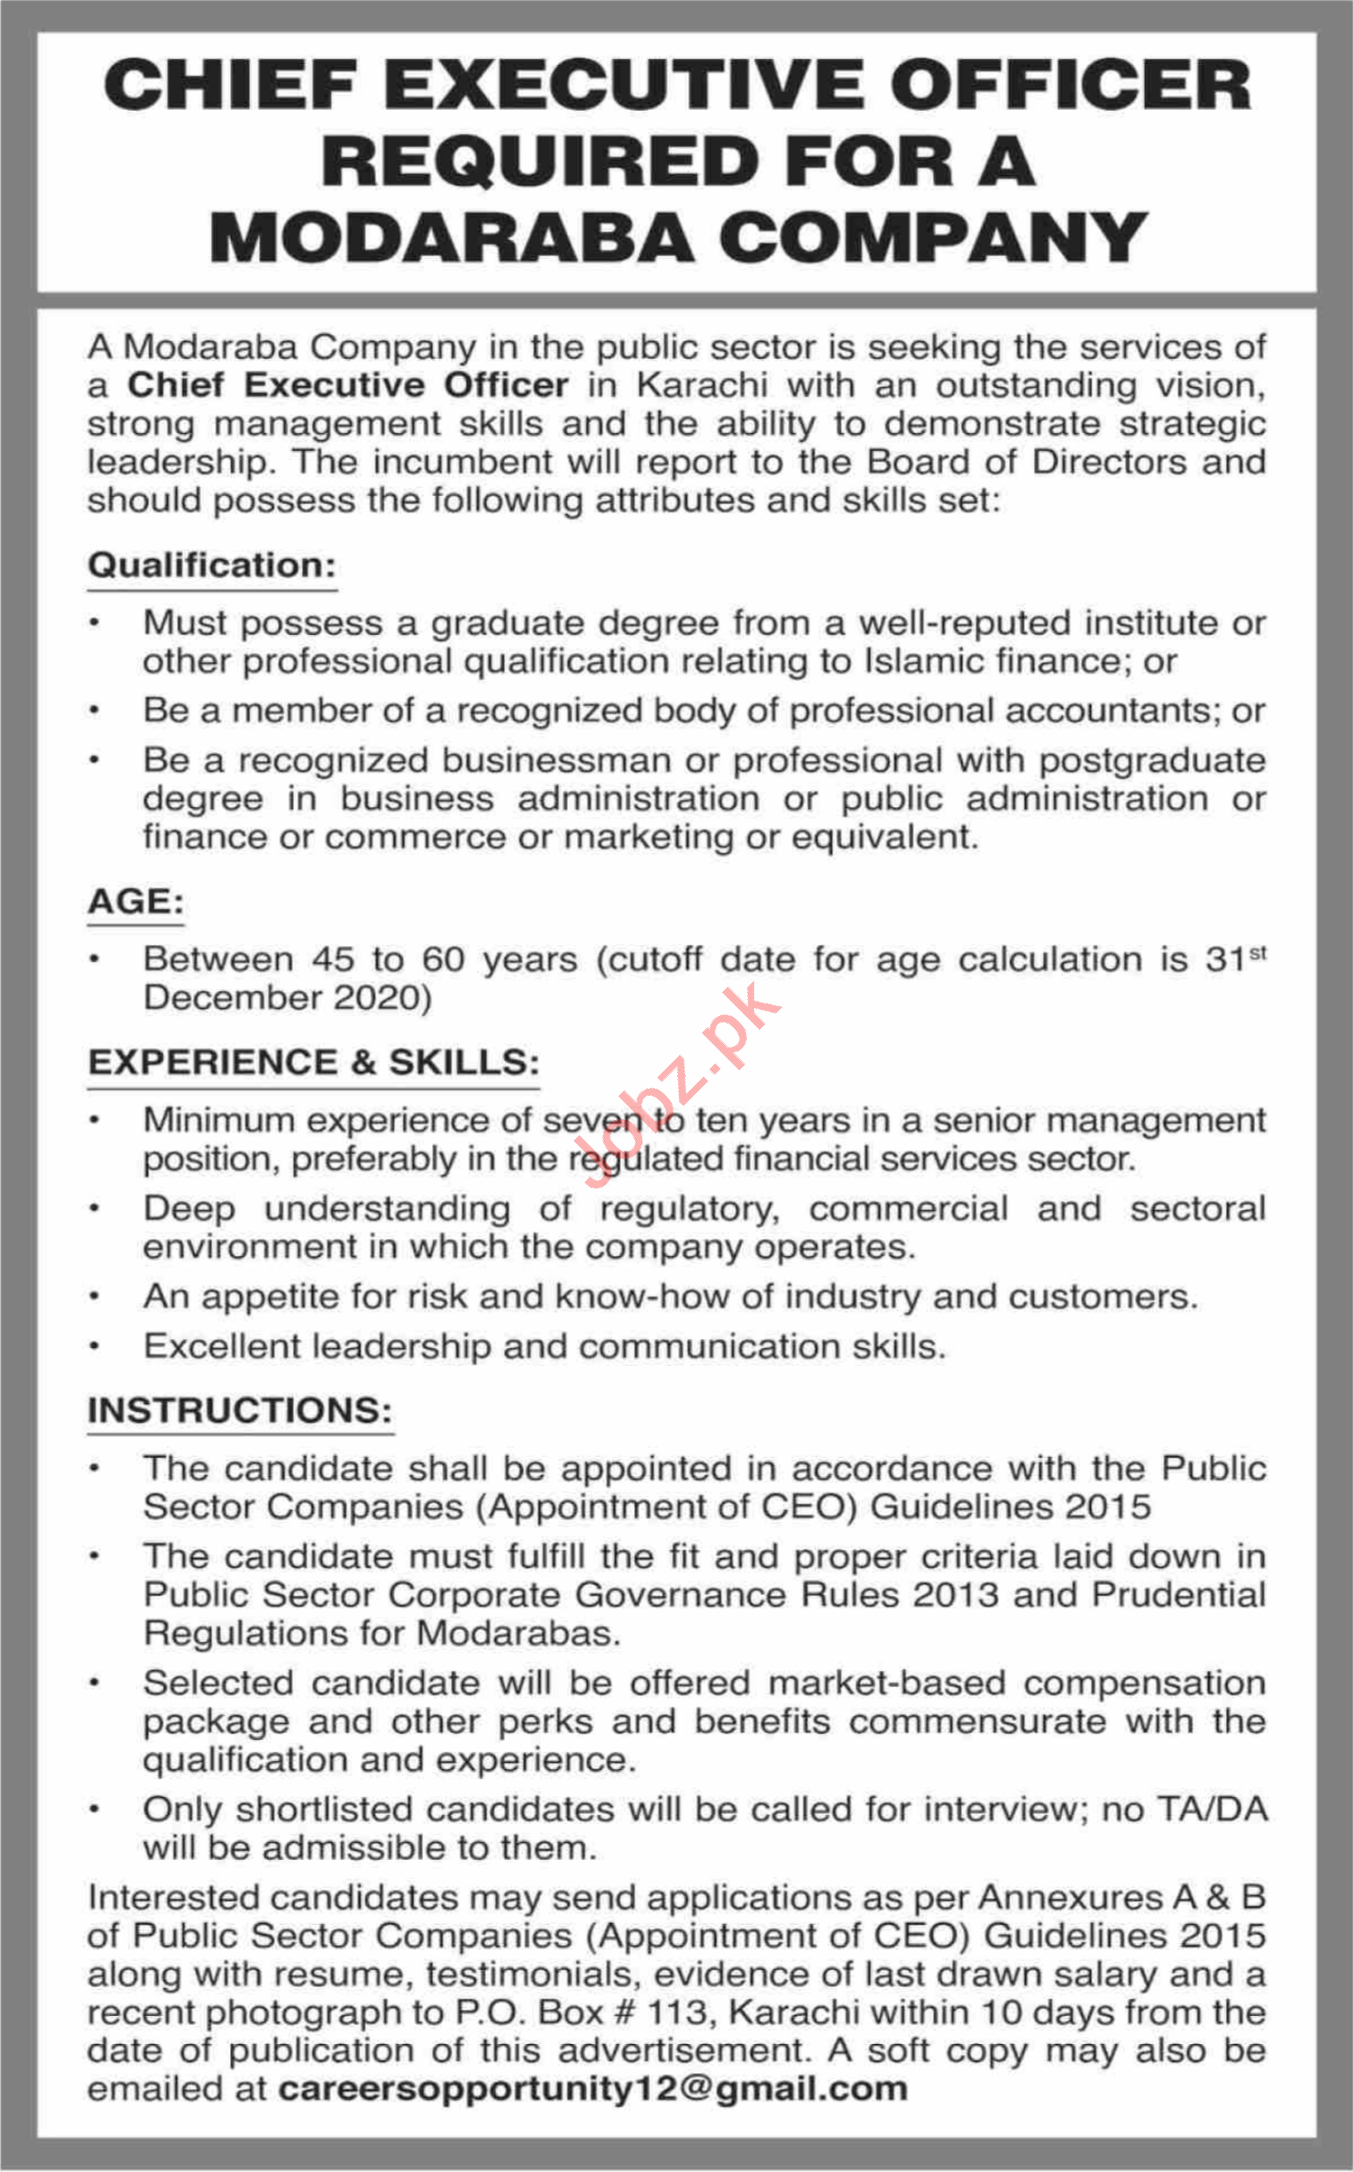 Chief Executive Officer Jobs 2021 in Modaraba Company